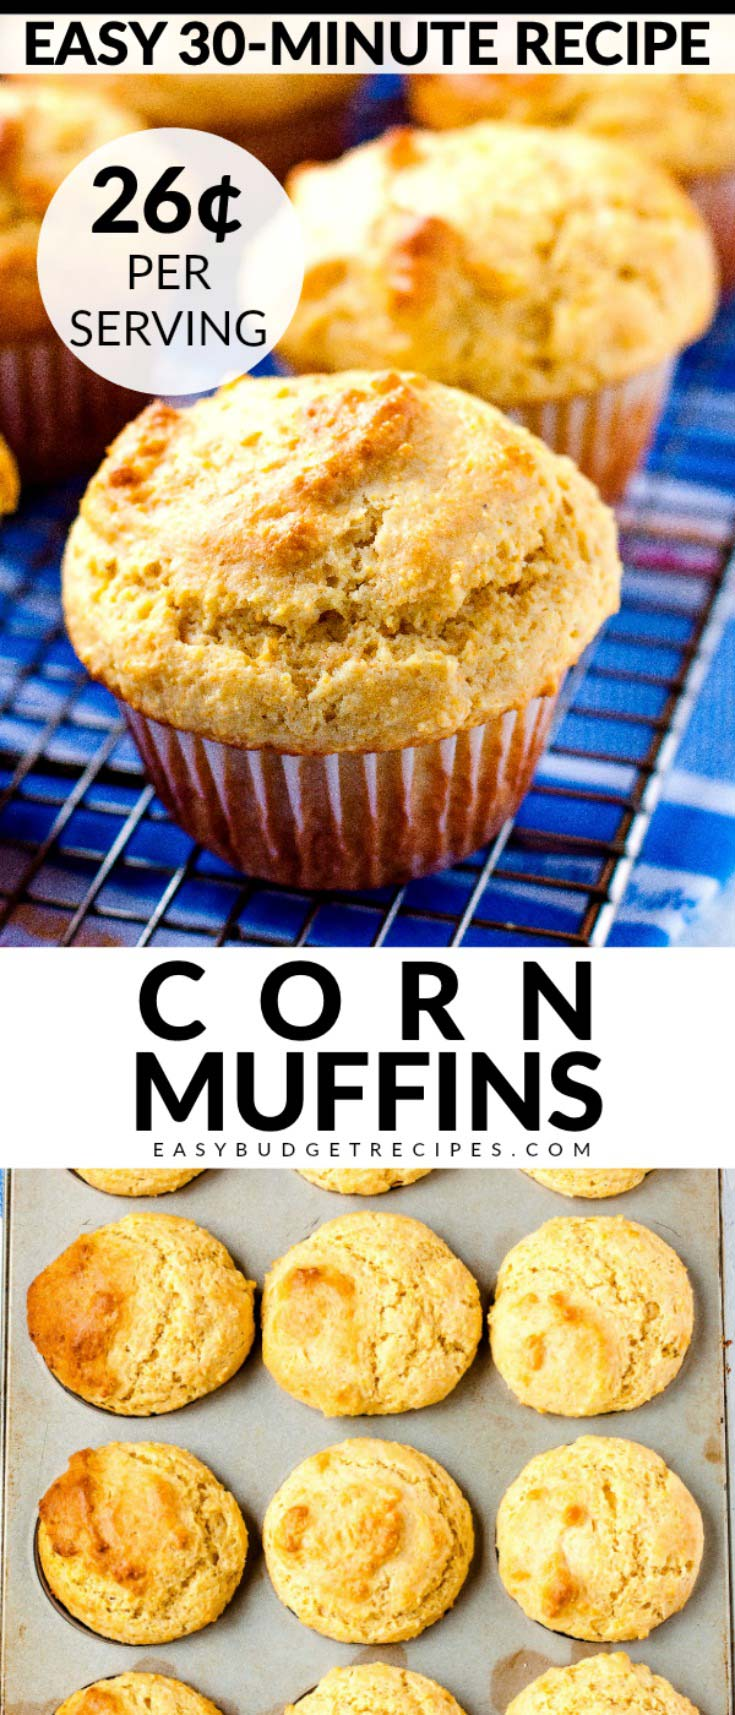 These corn muffins are easy to make moist, fluffy, and so delicious. This recipe makes 12 muffins and costs $3.04 to make. That's just 26¢ per serving! via @easybudgetrecipes